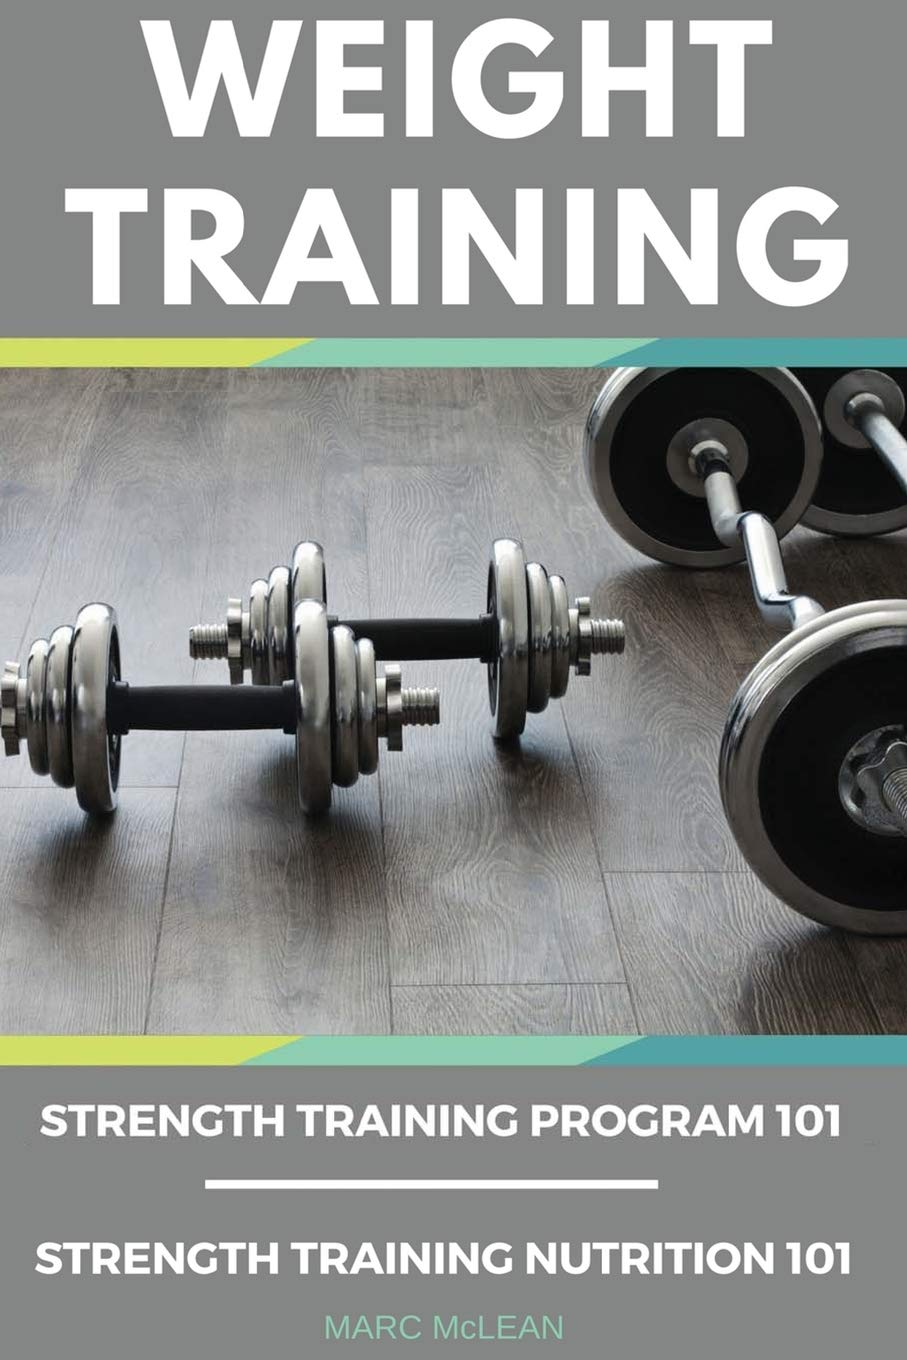 Weight Training Books Strength Nutrition product image